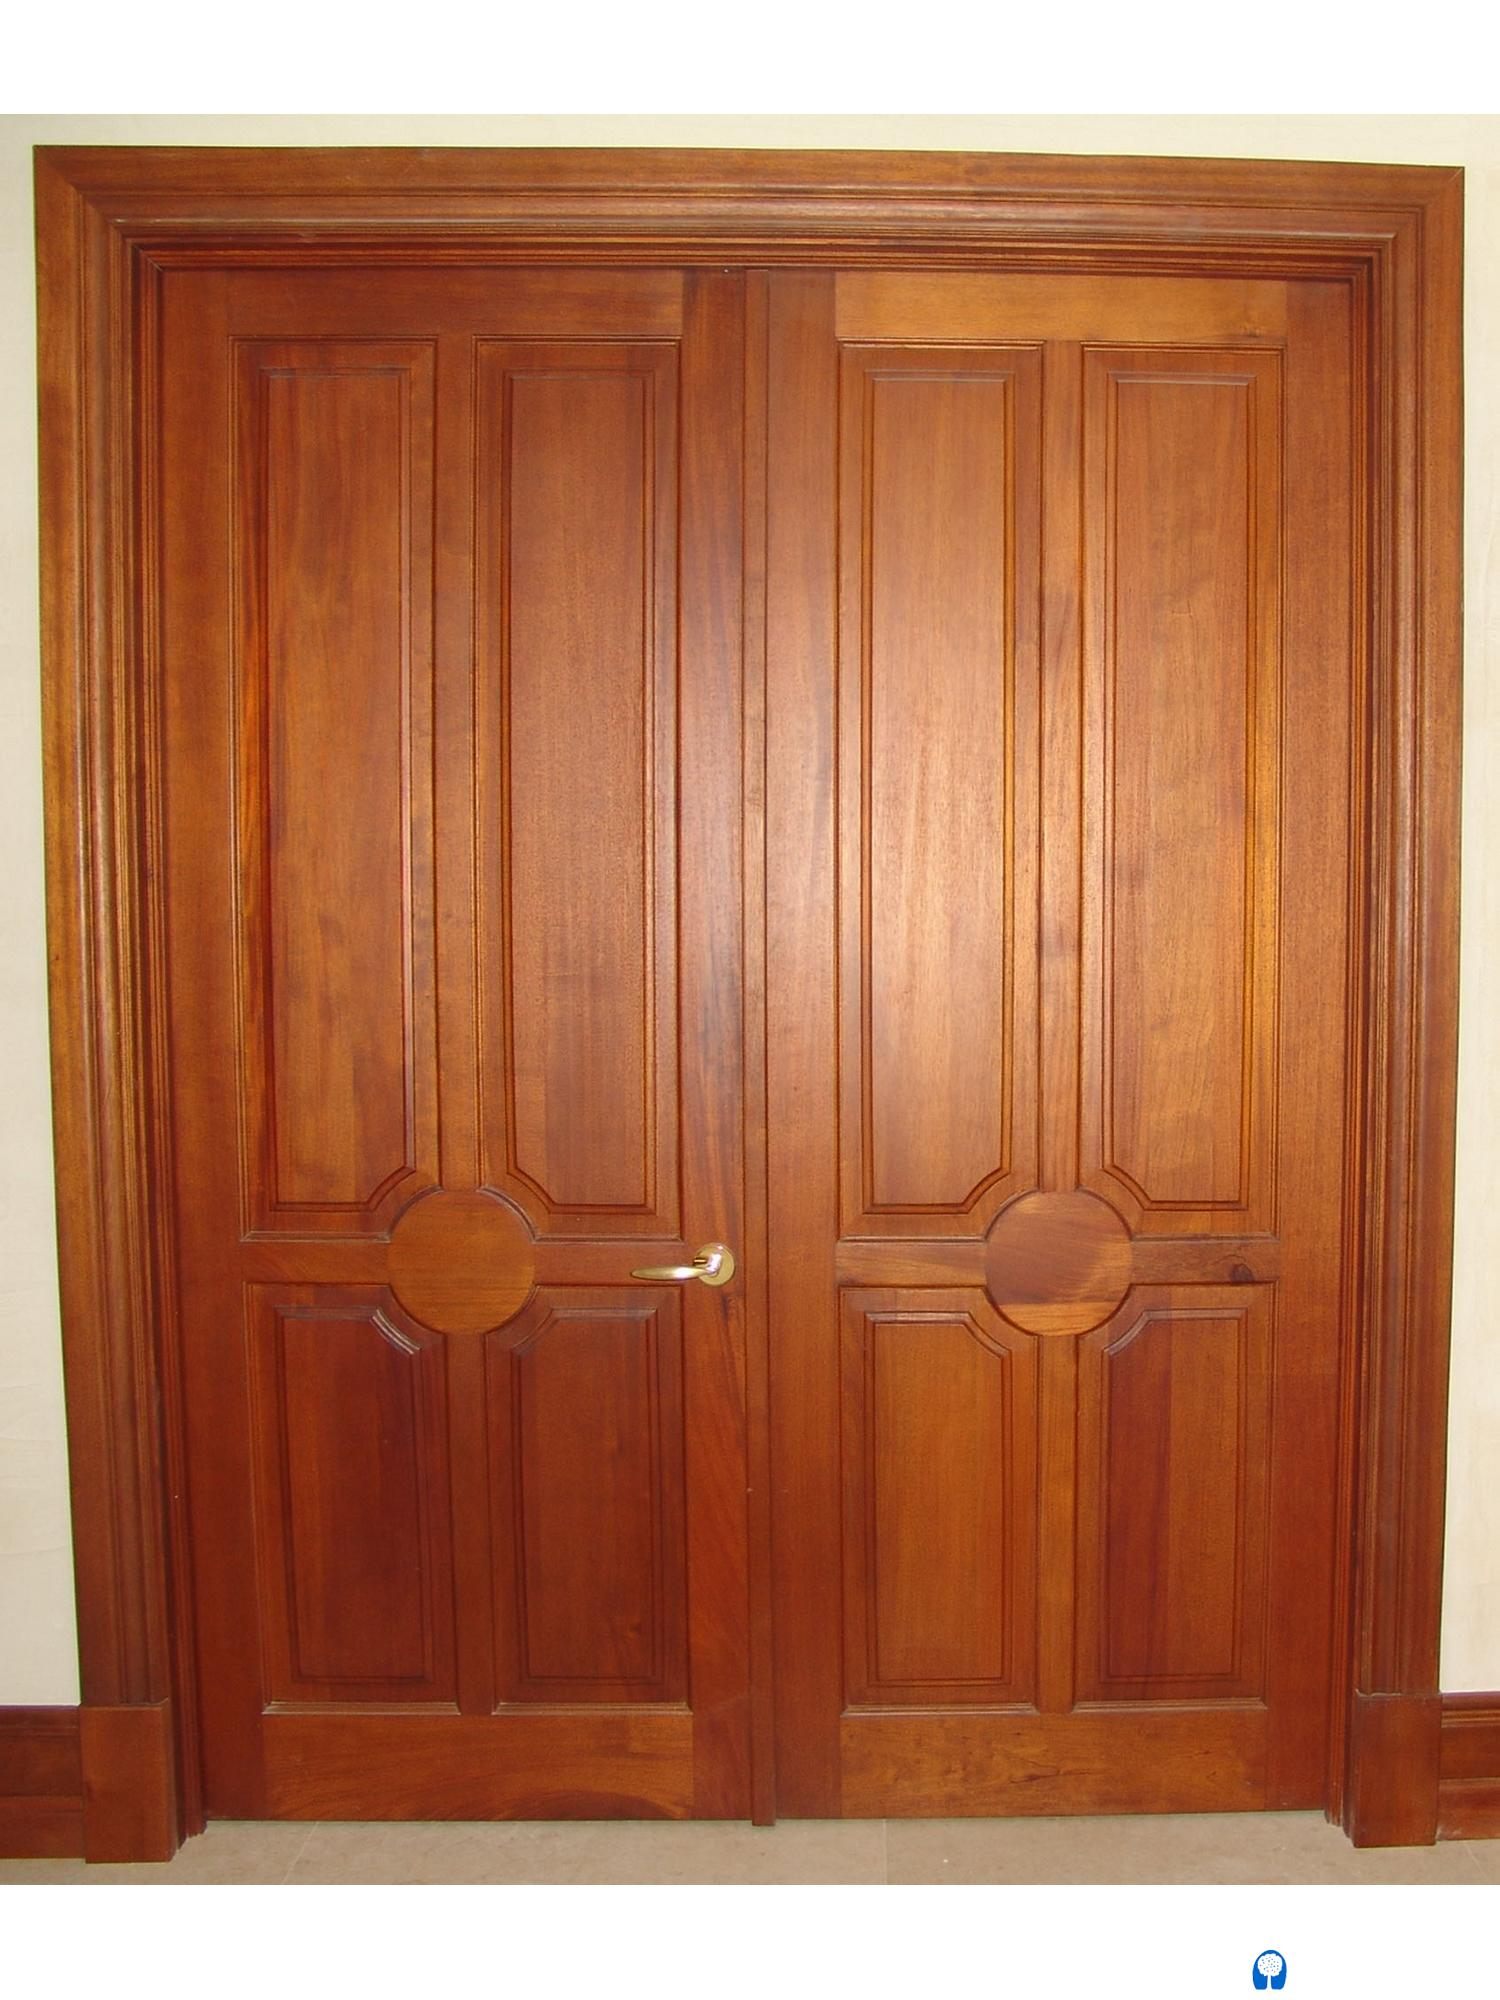 Bal harbour mahogany interior doors sabana windows for Mahogany interior doors